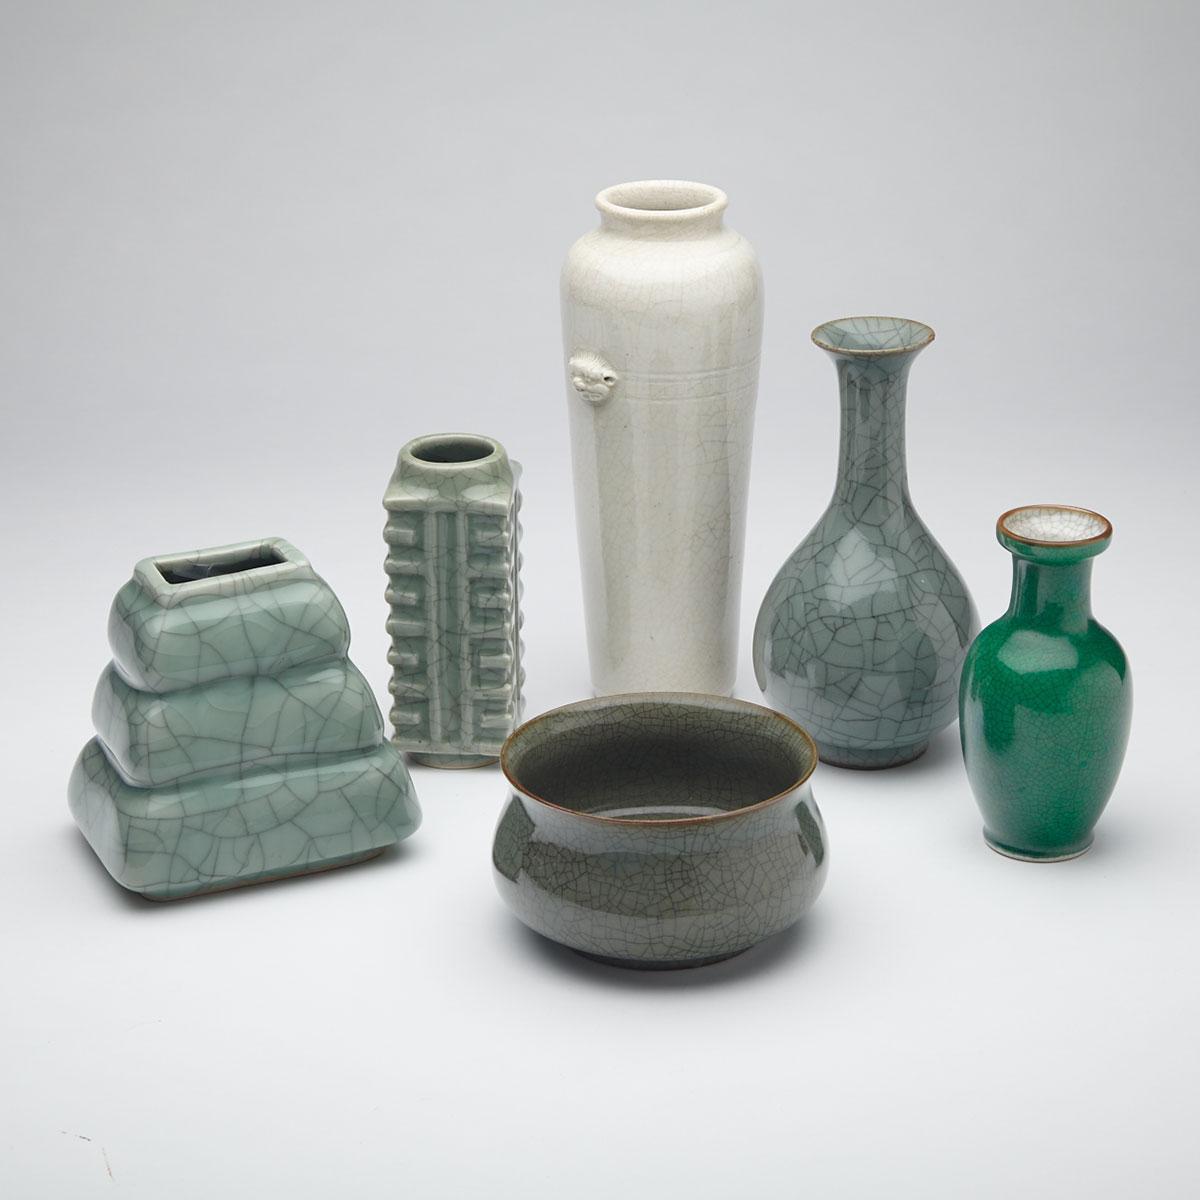 Group of Six Crackle Glazed Porcelain Wares, 19th/20th Century